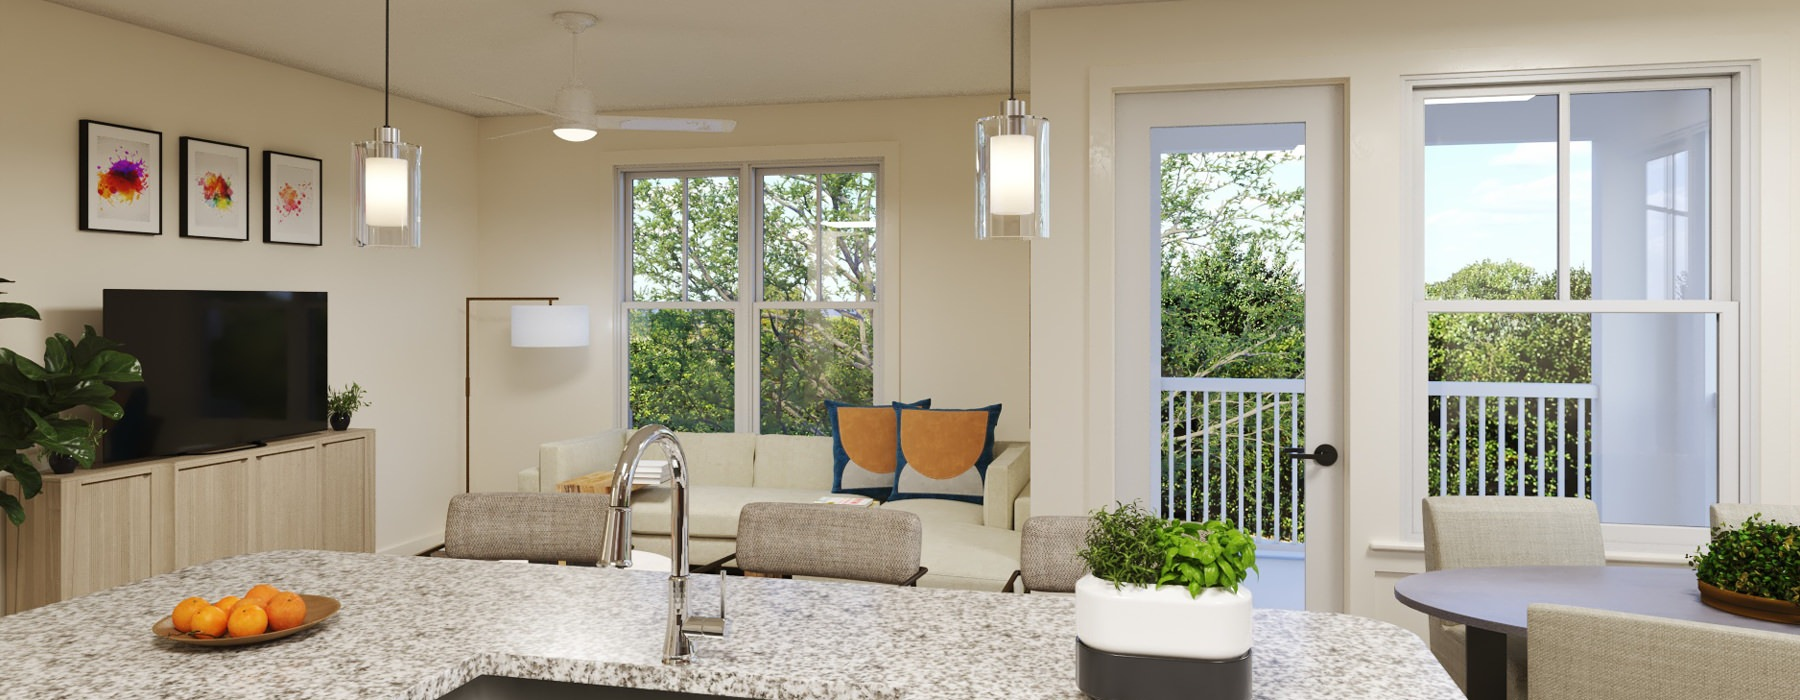 Open kitchen and living room with plenty of natural light.